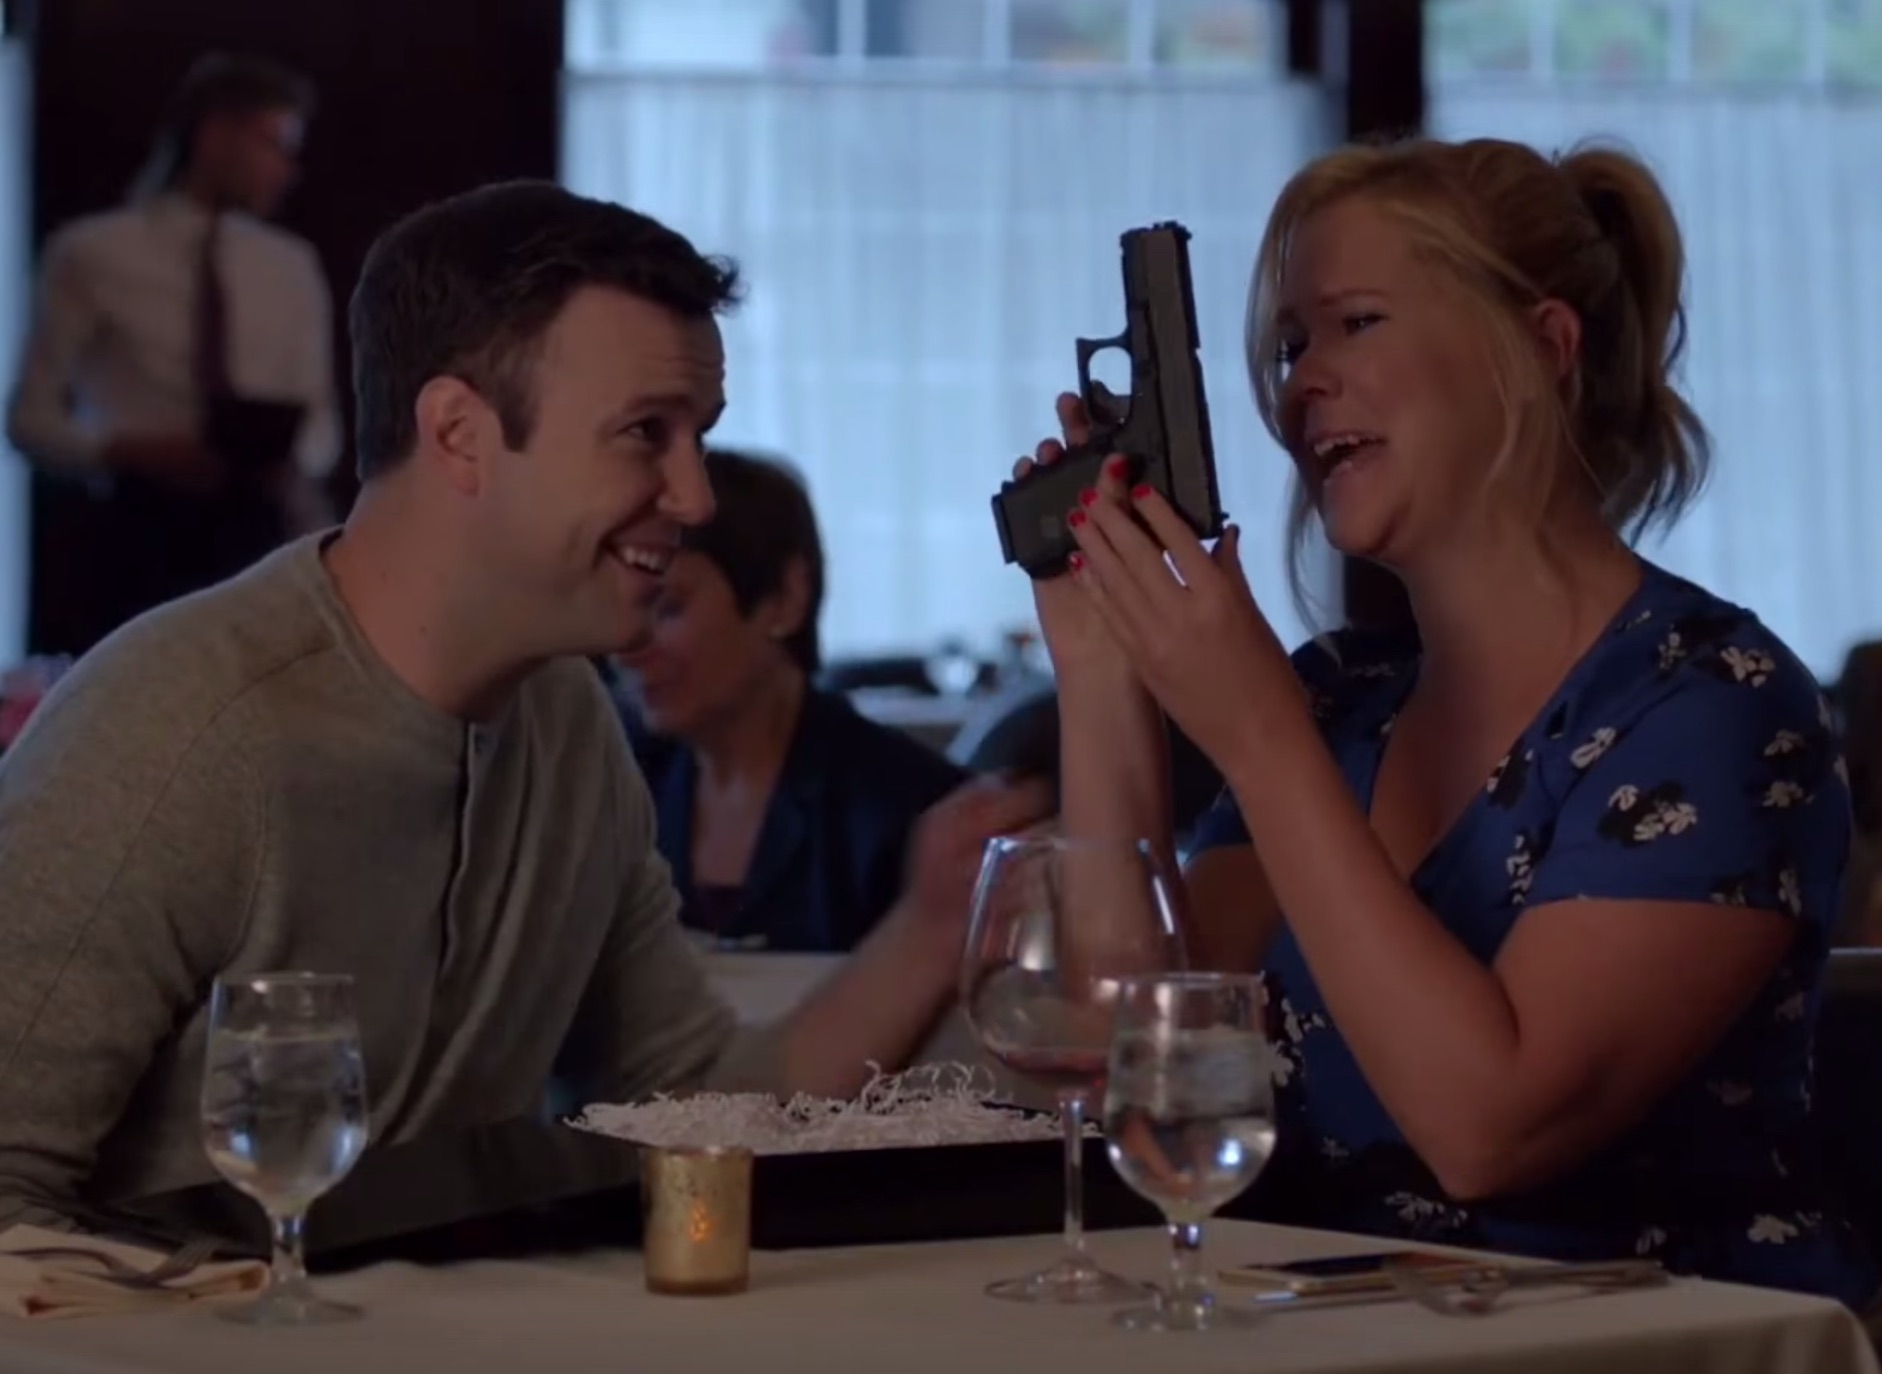 Amy Schumer takes a break from jokes to get serious about gun control on 'SNL'